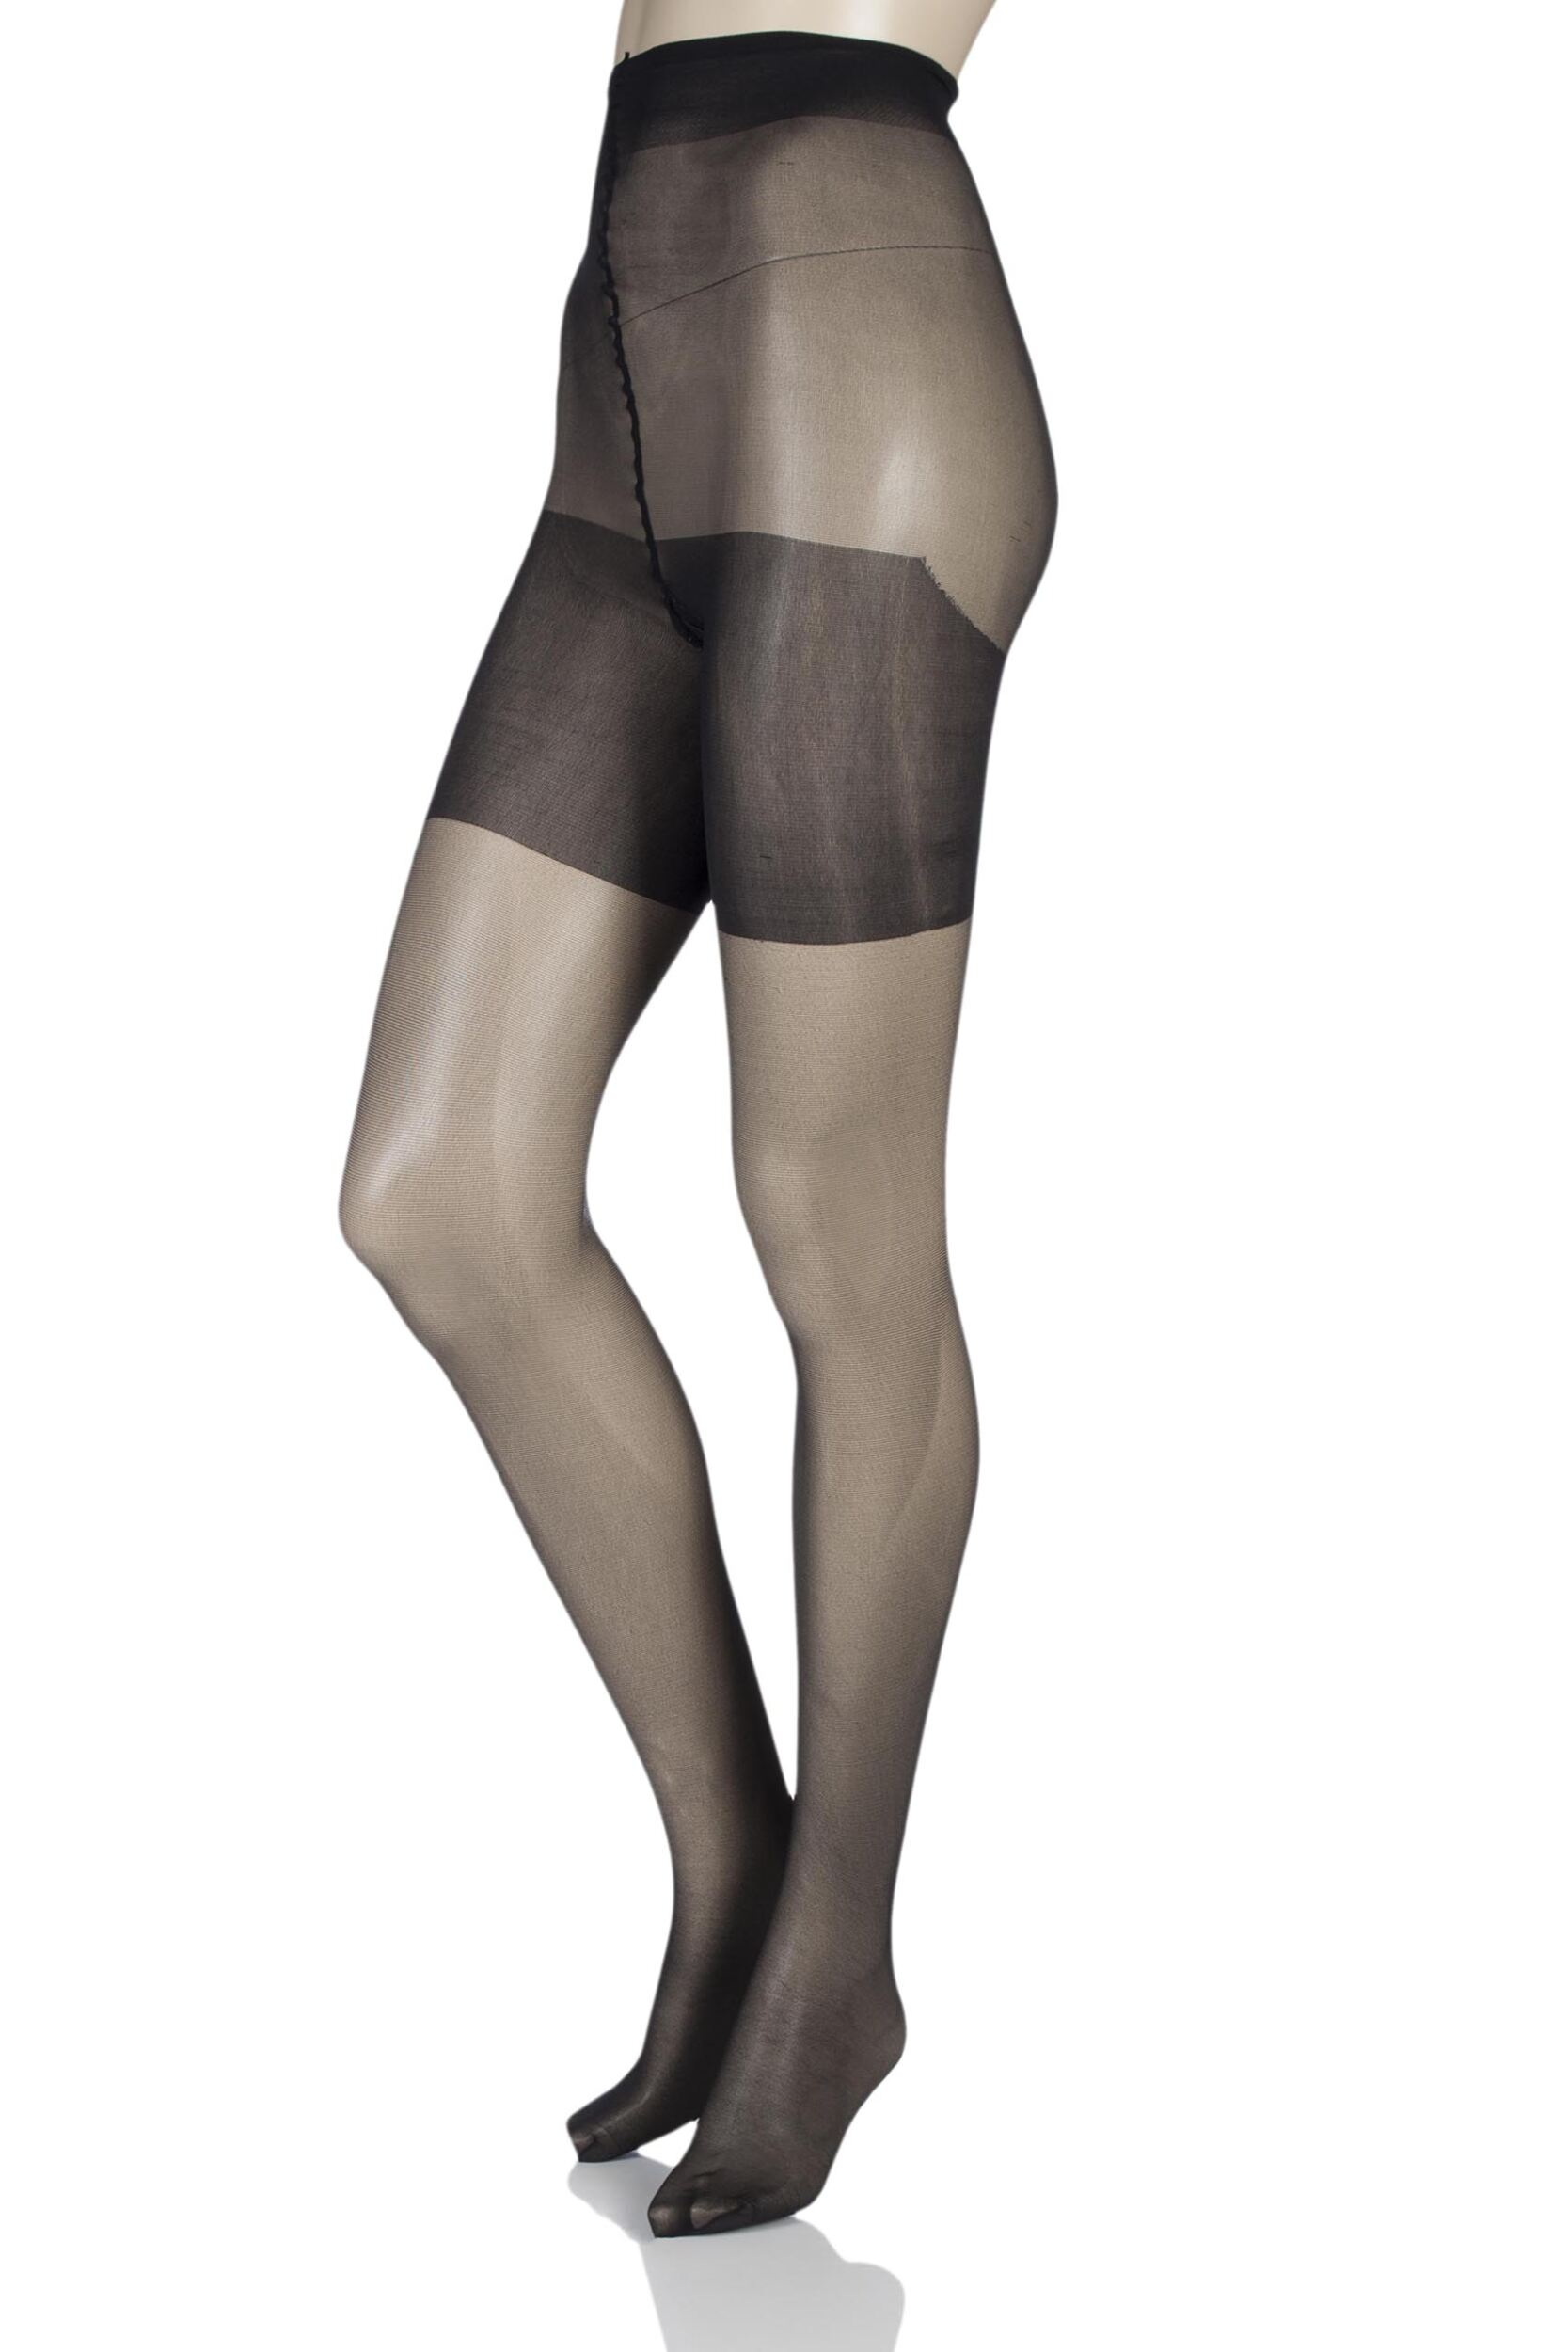 1 Pair Charnos Xelence 15 Denier Sheer Tights